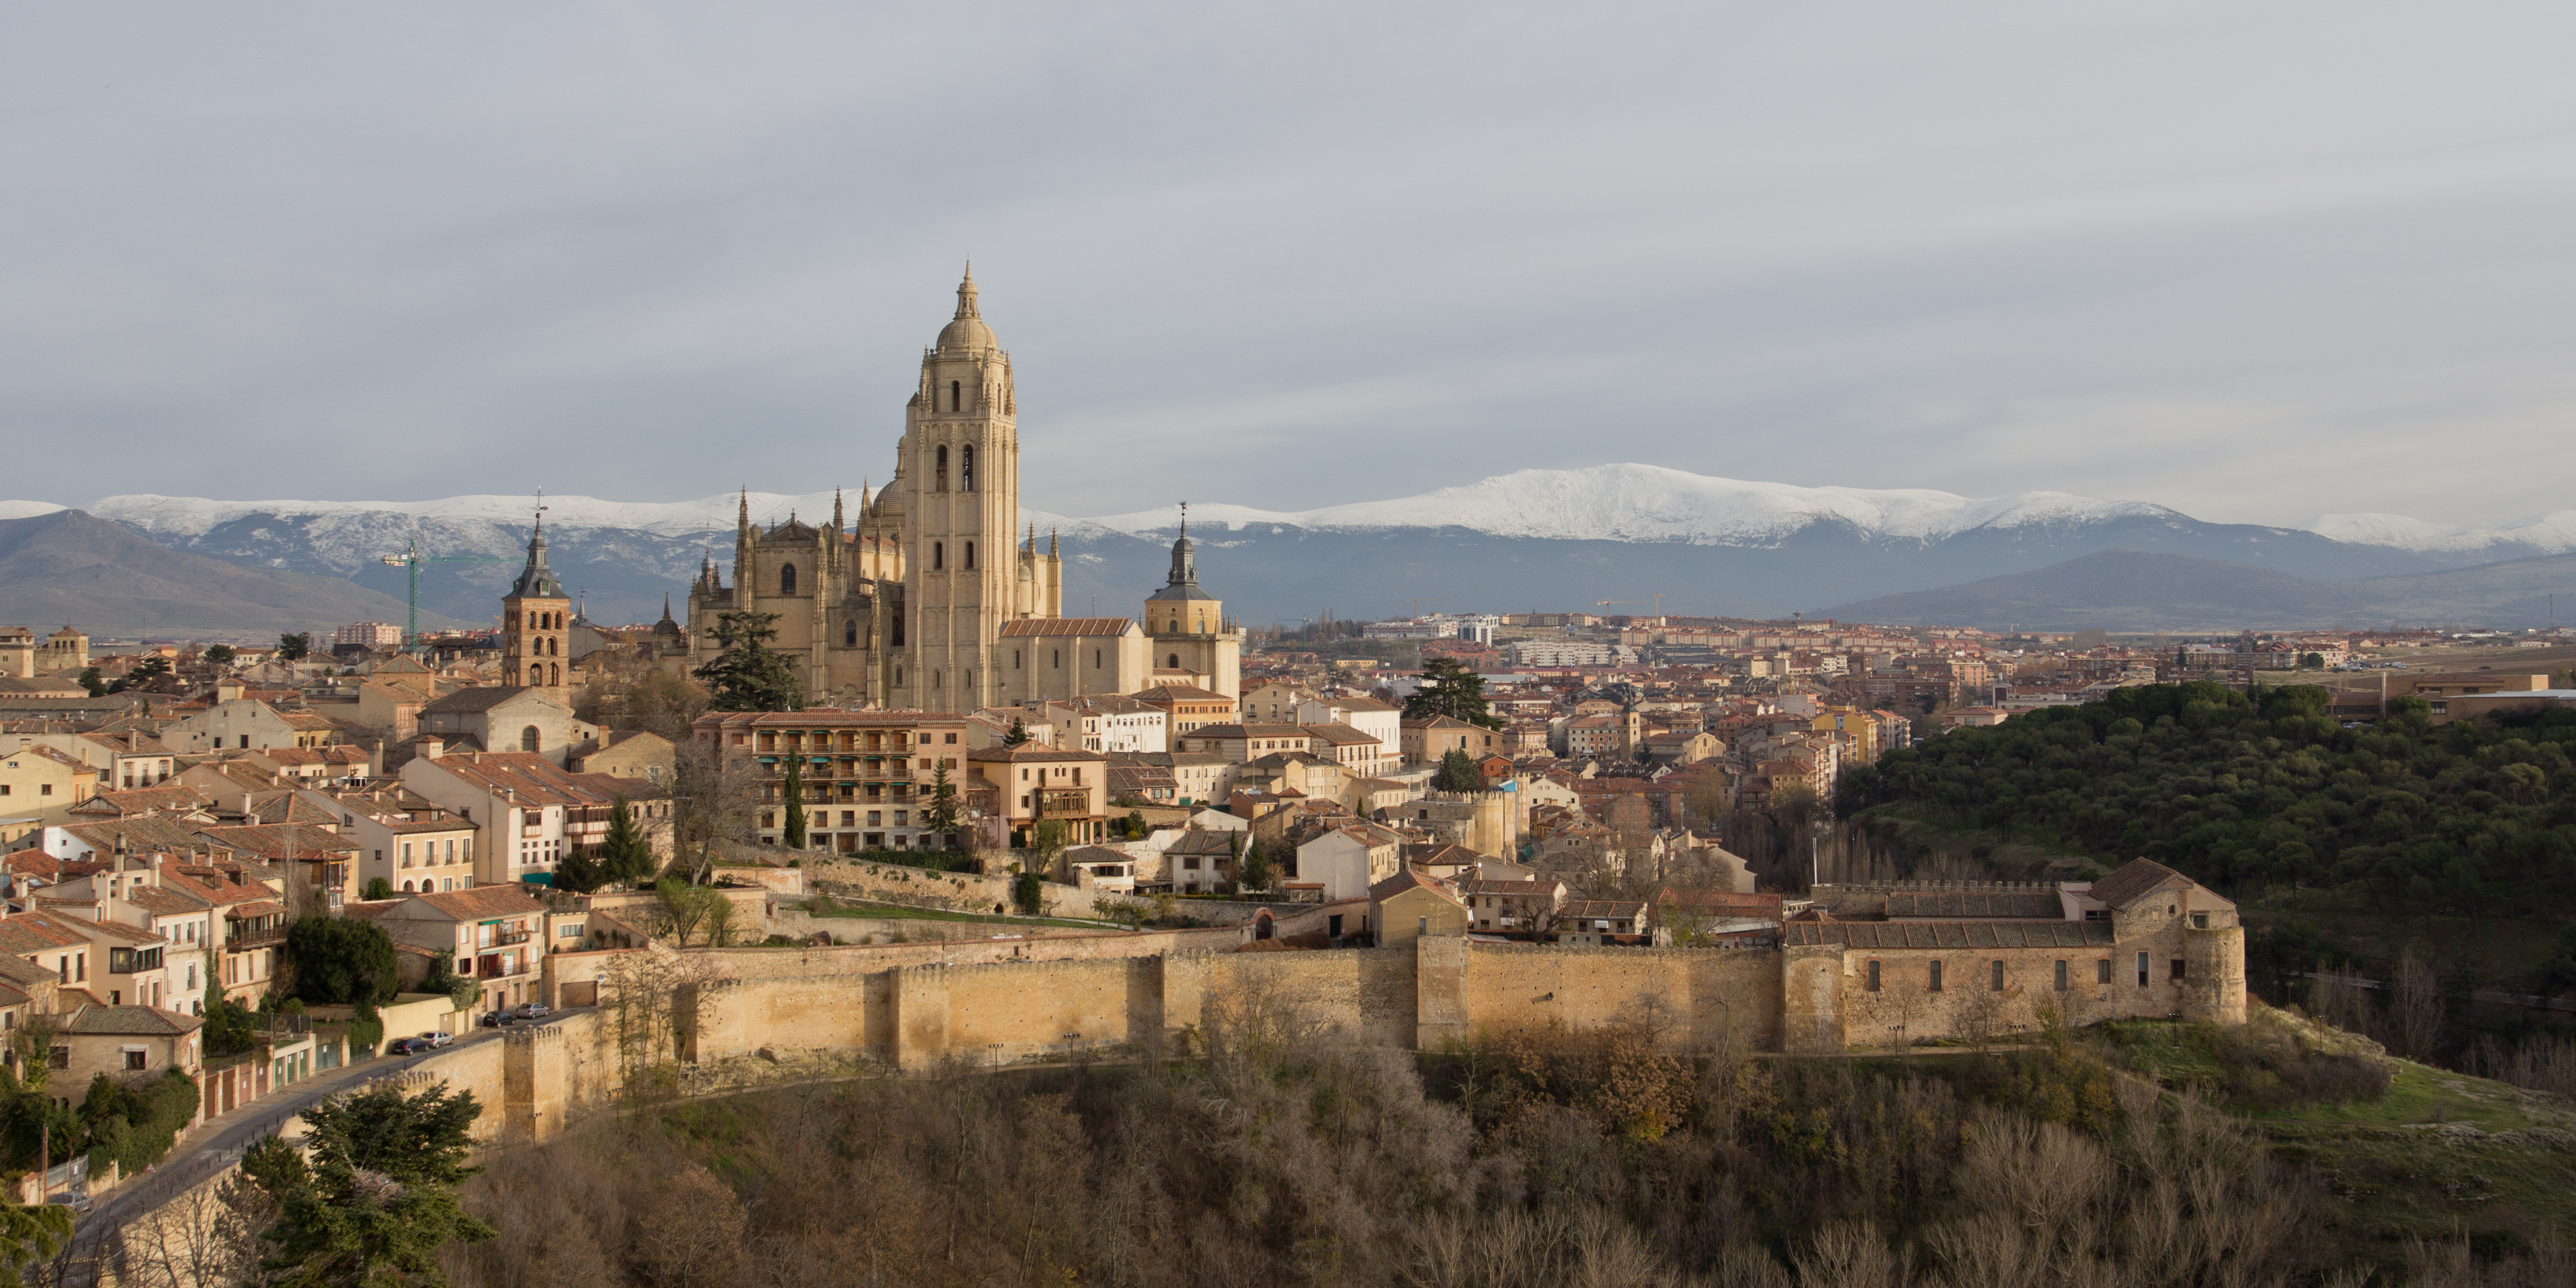 File:Segovia - 01.jpg - Wikimedia Commons